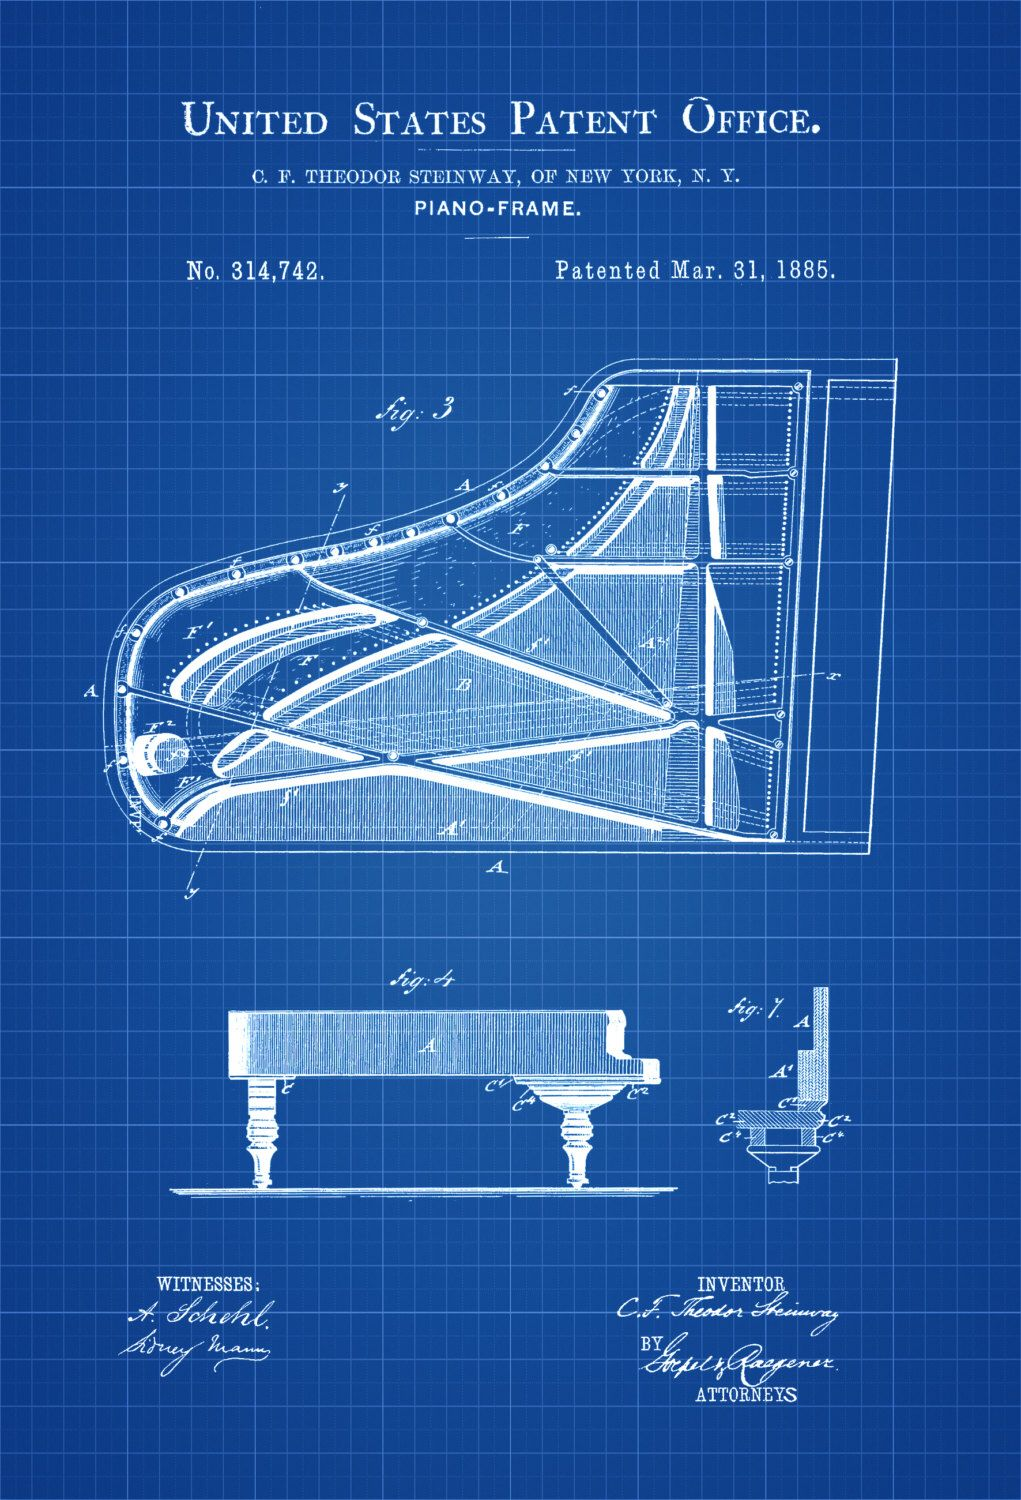 Steinway Piano Frame Patent - Patent Print, Wall Decor, Music Poster ...